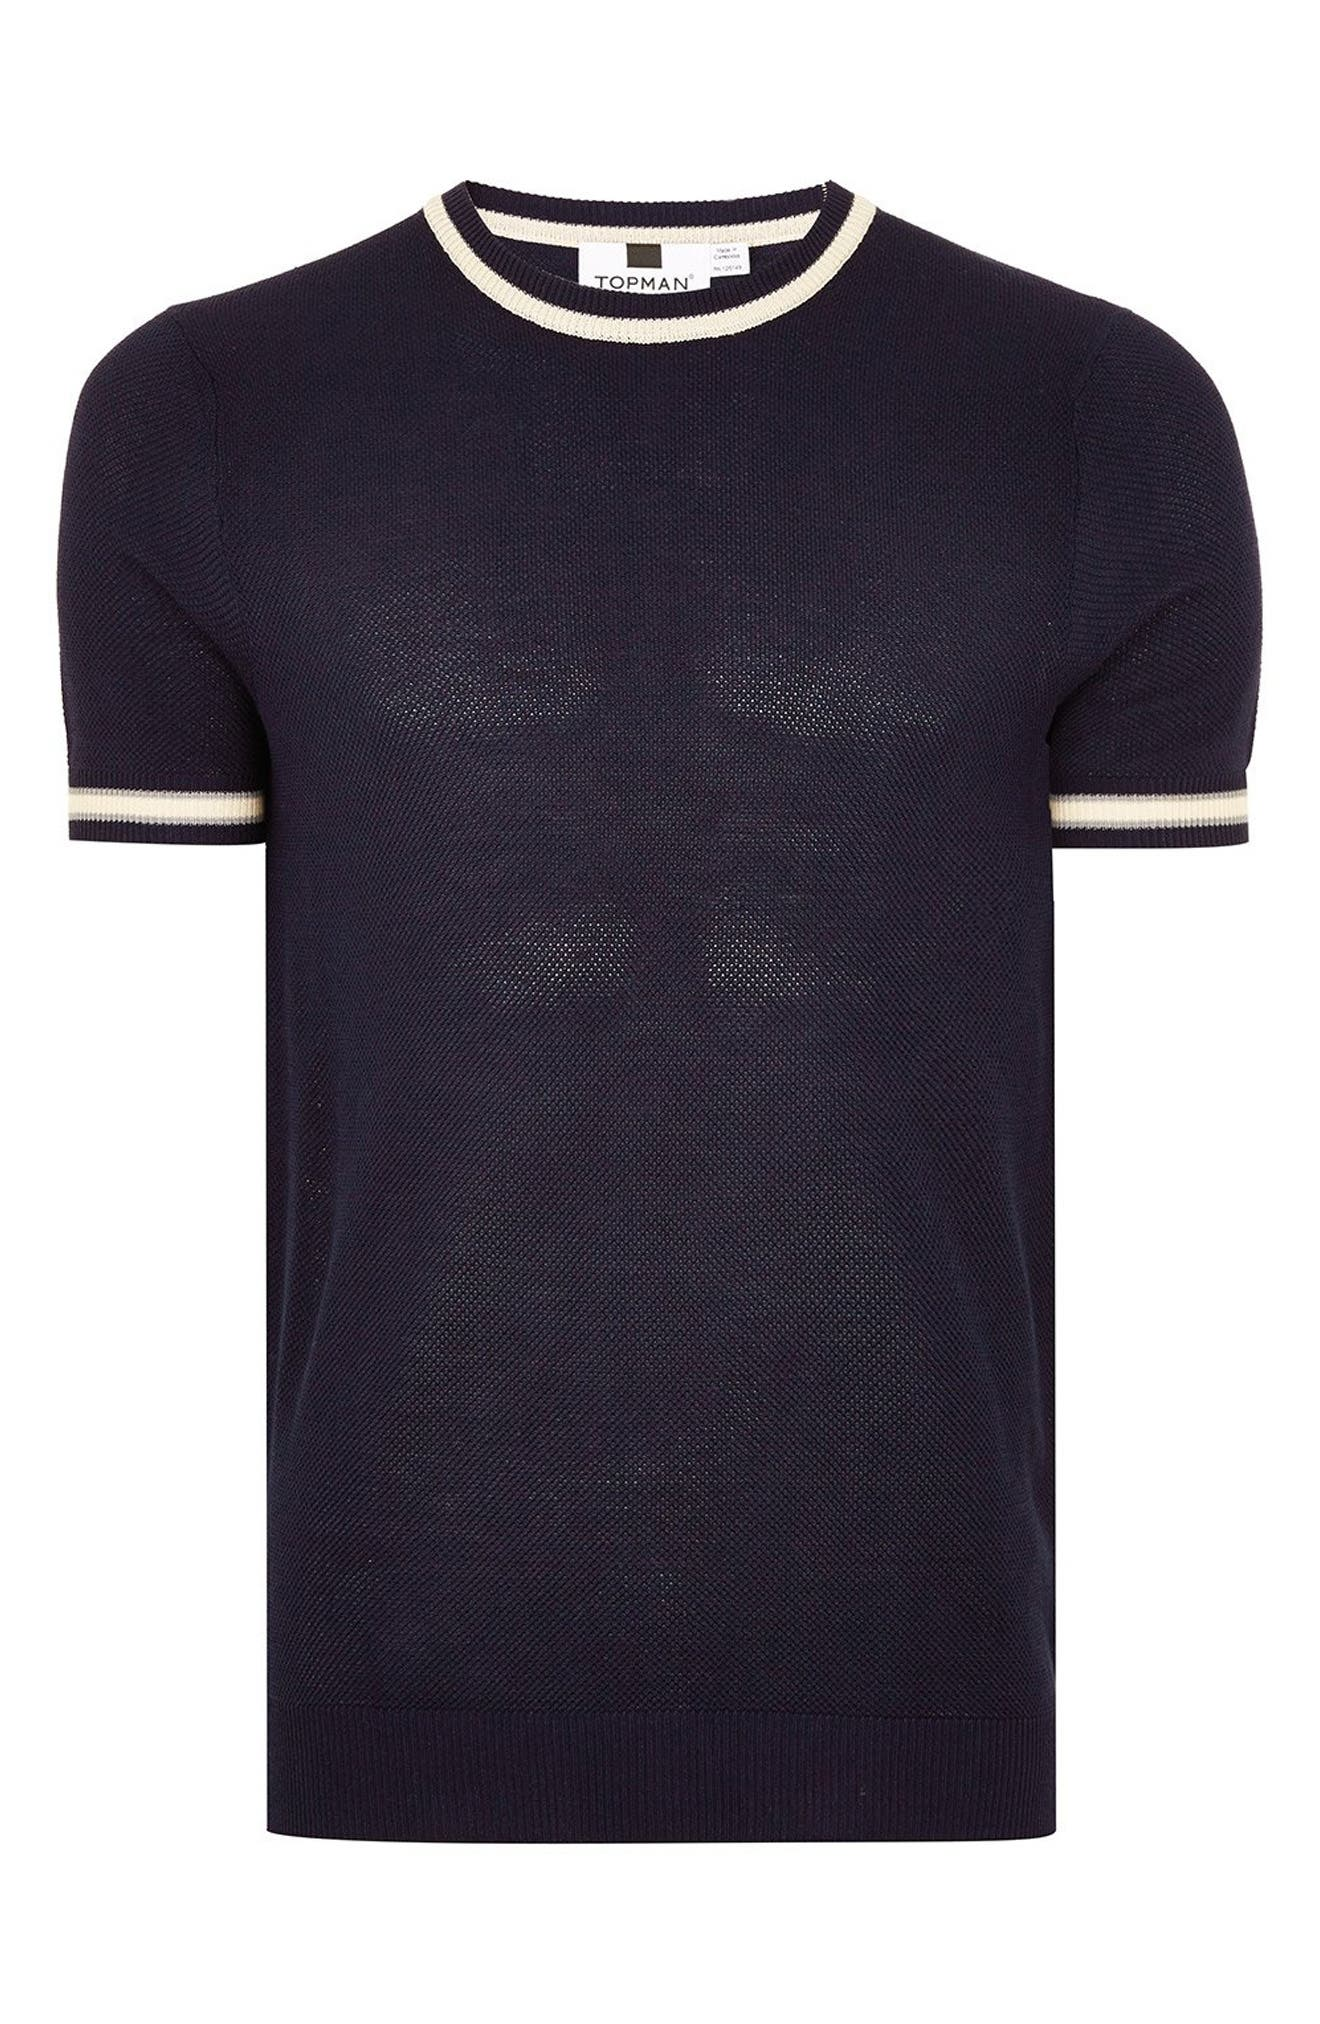 Tipping Classic Fit Short Sleeve Sweater,                             Alternate thumbnail 4, color,                             NAVY BLUE